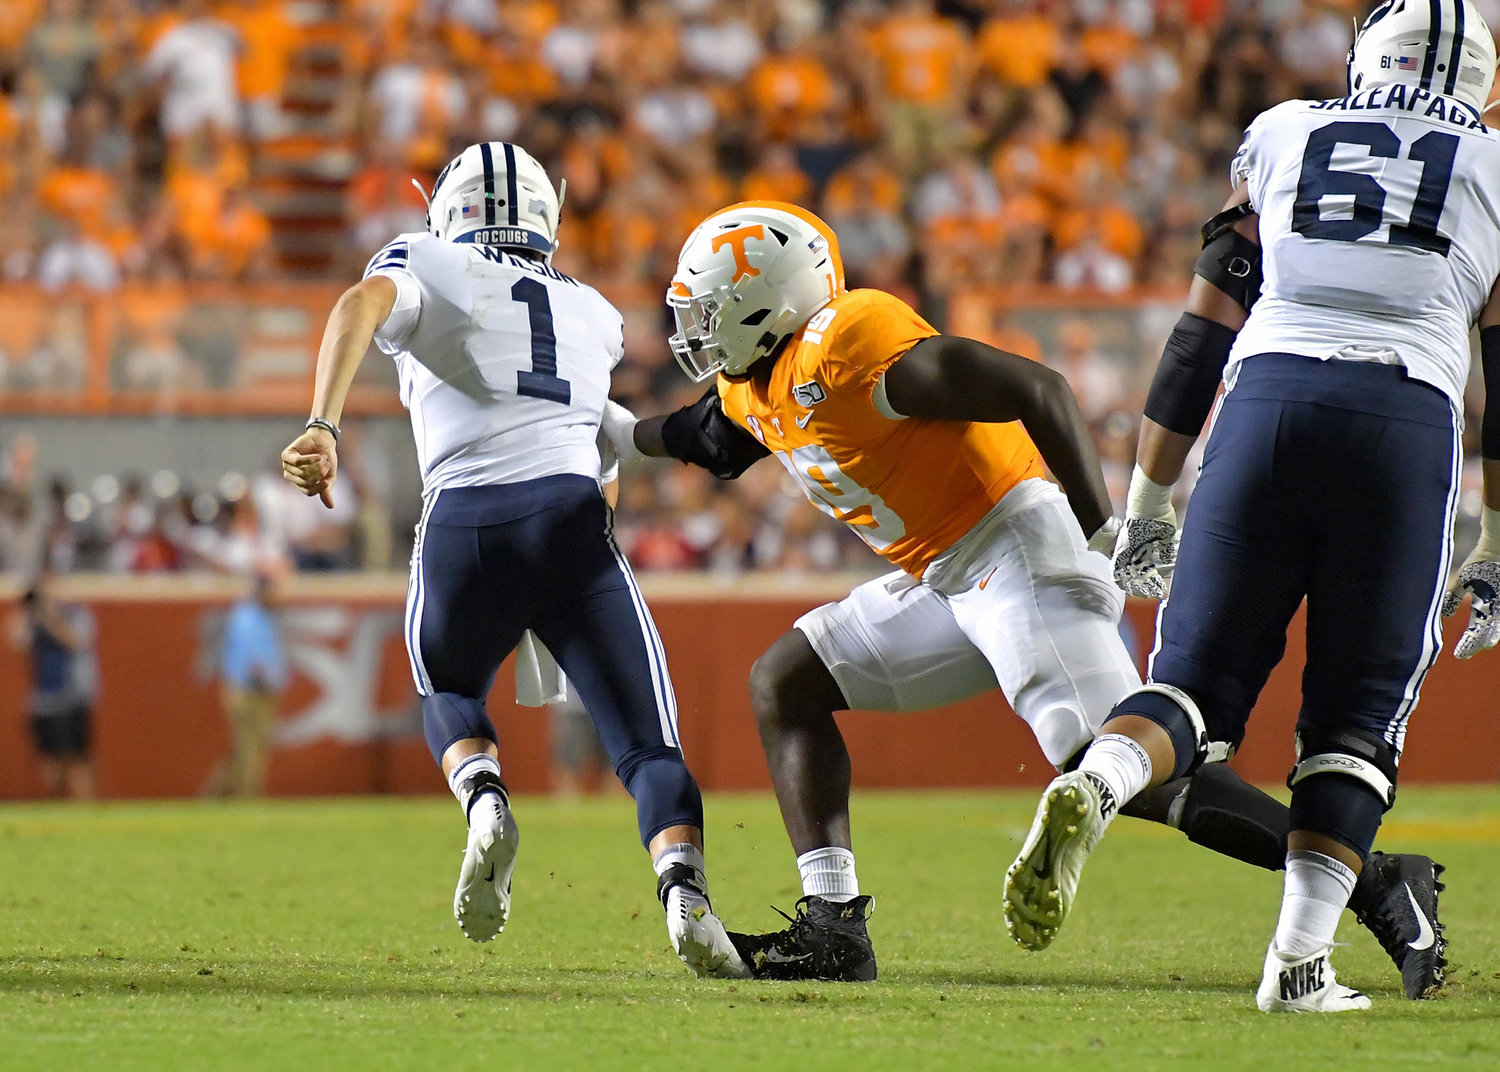 Vols Fall to BYU | Herald Citizen